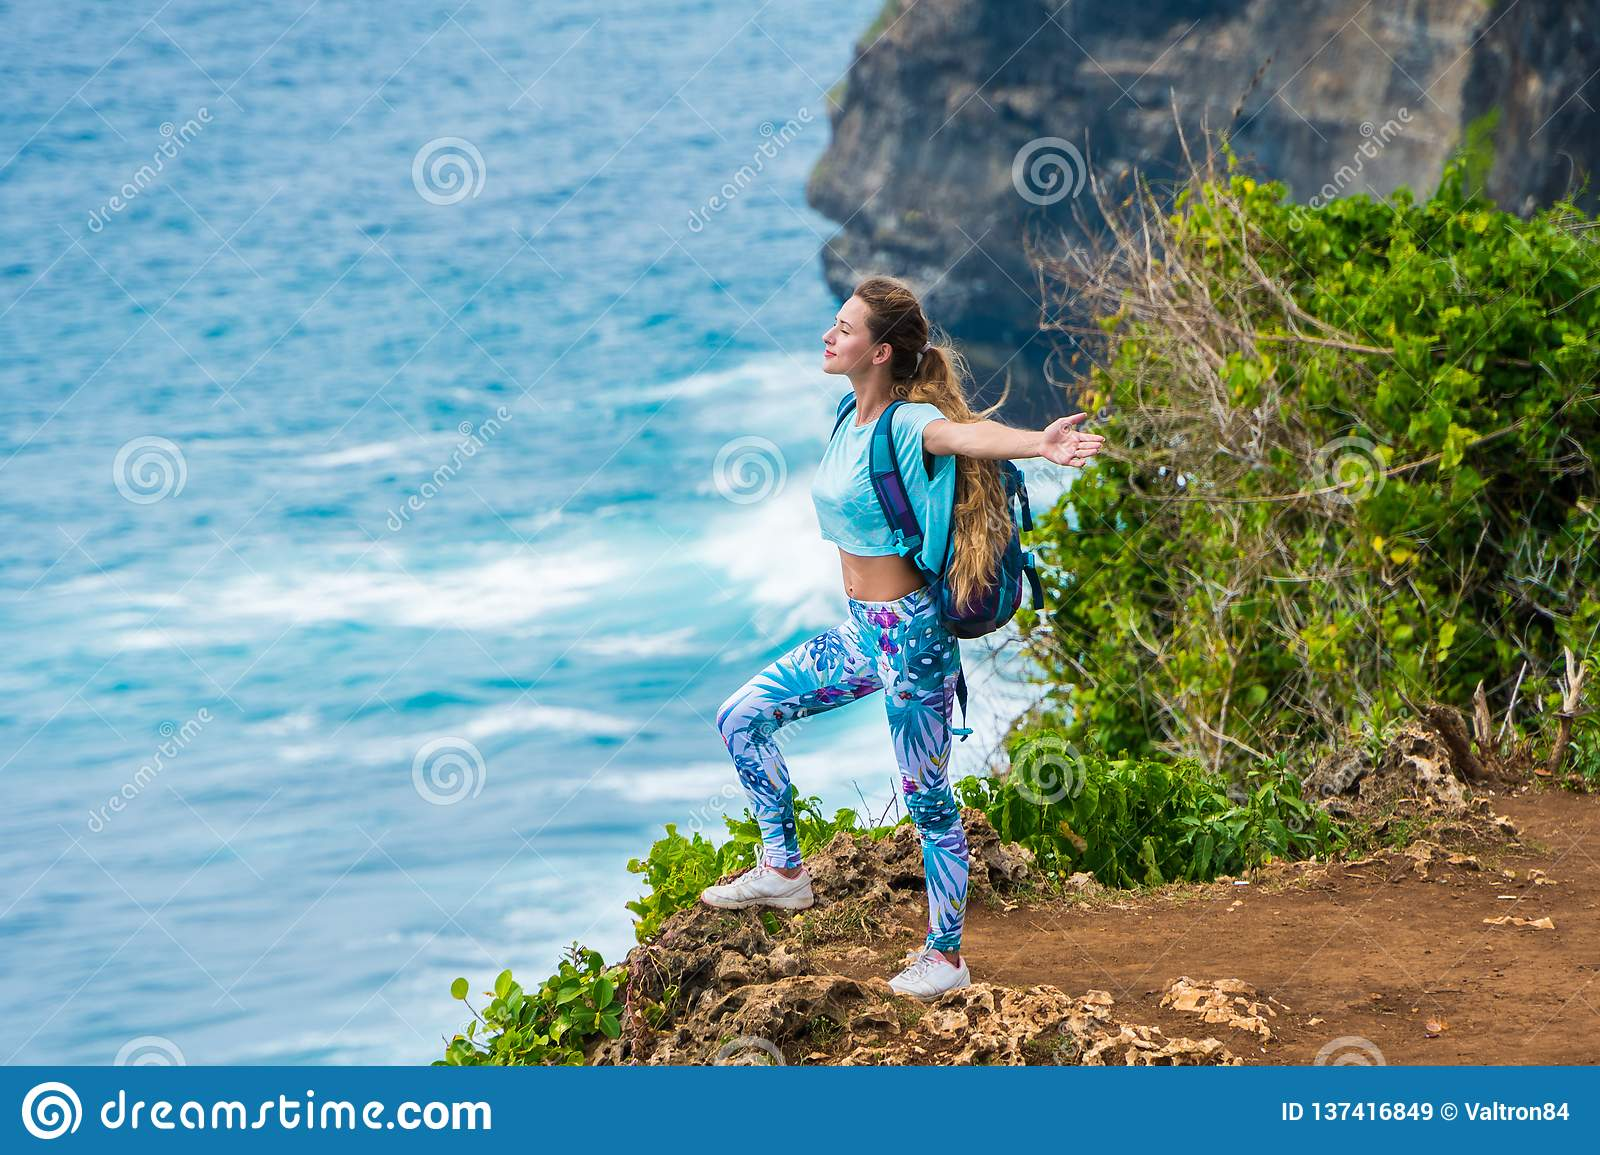 Female traveler with a backpack standing on the edge of a cliff and enjoying the view of the ocean. Bali, Indonesia